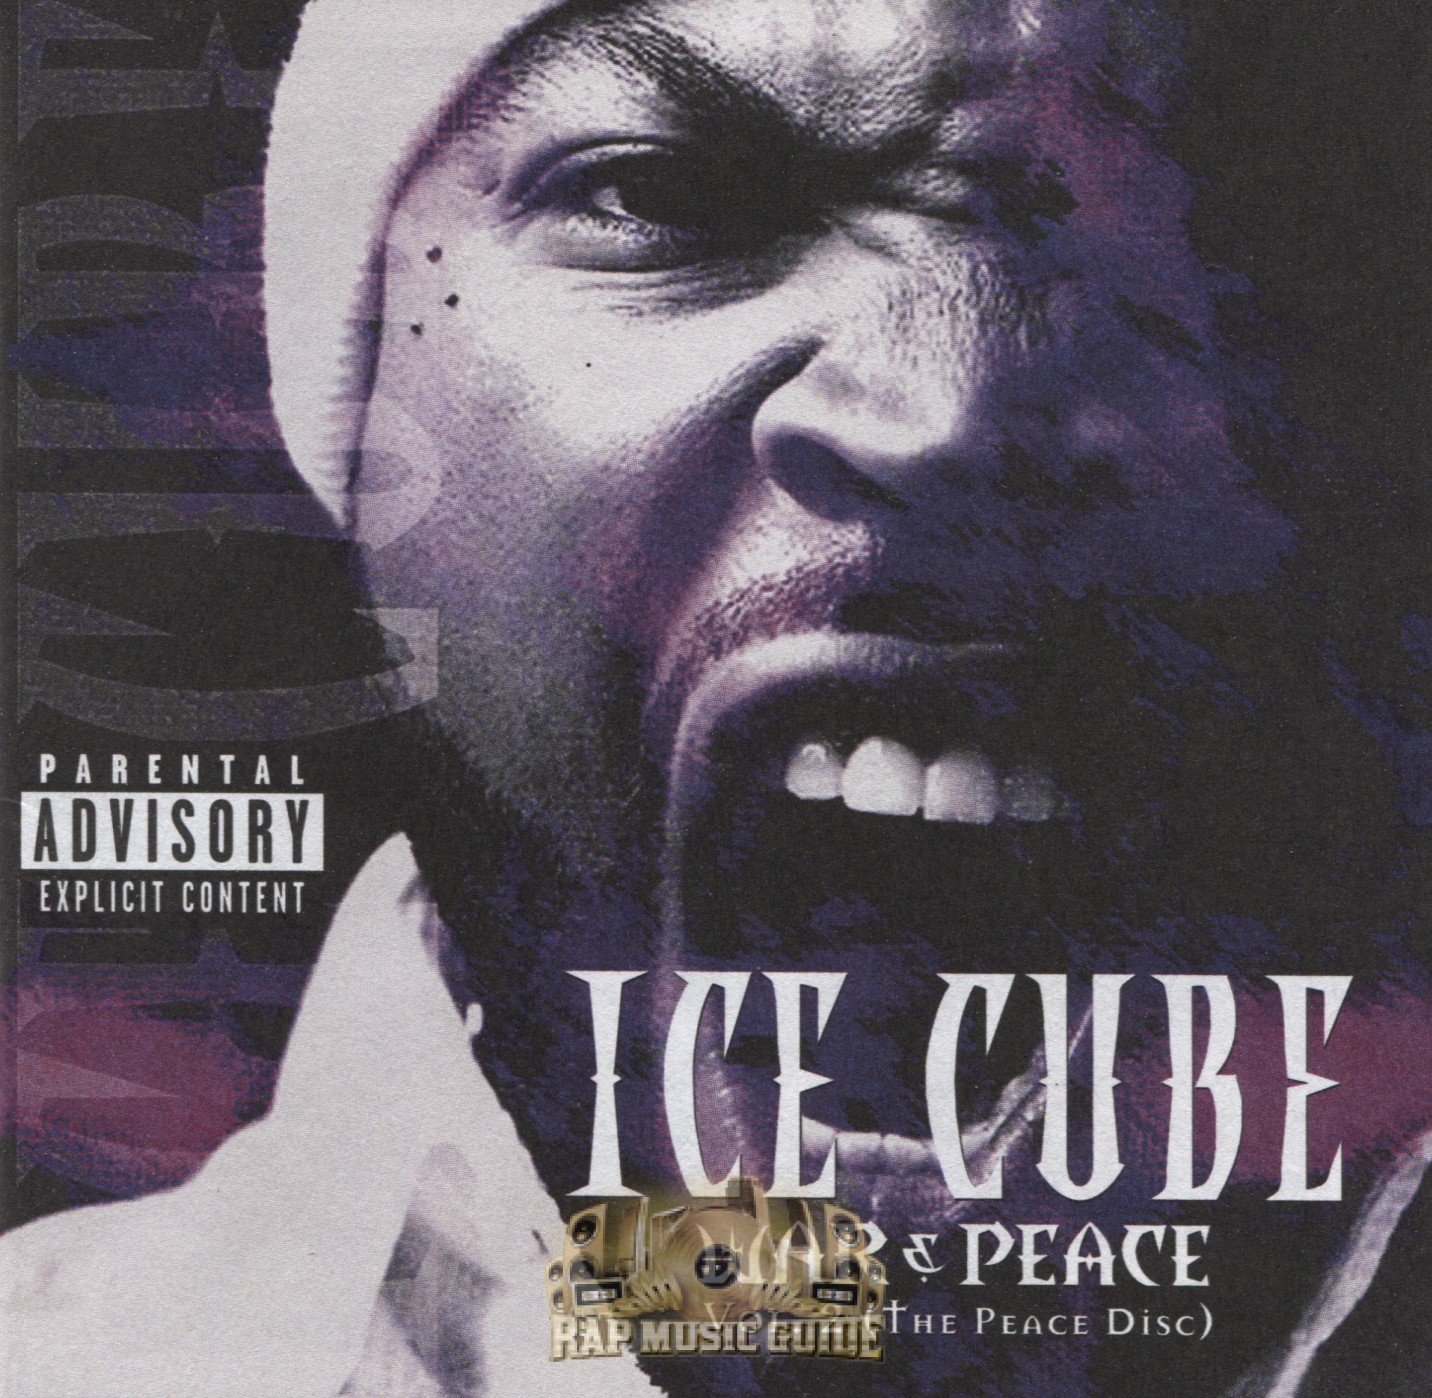 ice cube war peace vol 2 the peace disc cd rap music guide. Black Bedroom Furniture Sets. Home Design Ideas